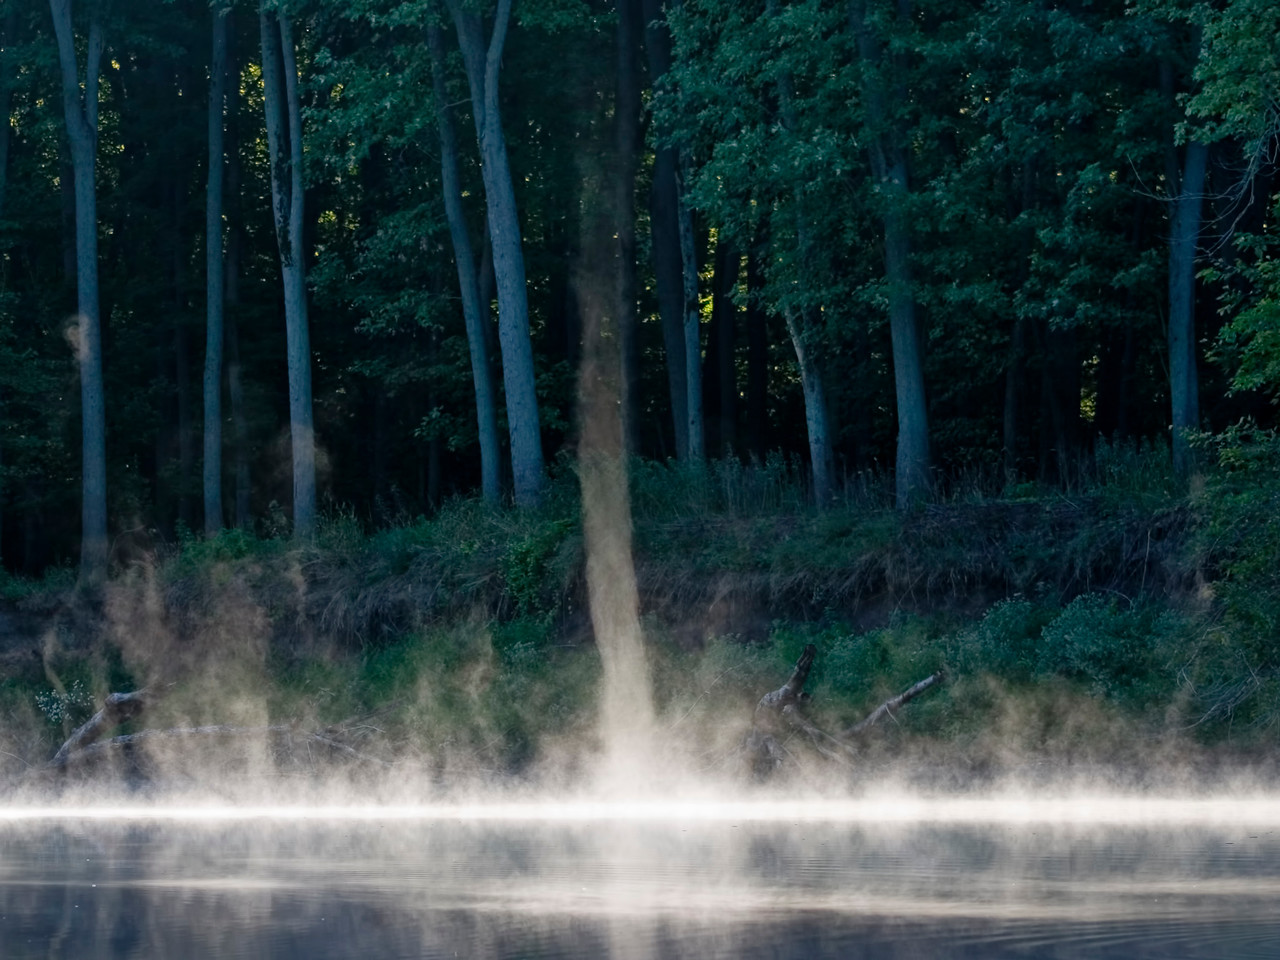 September 23 - Steam Devils on the Sangamon River, Macon County Illinois